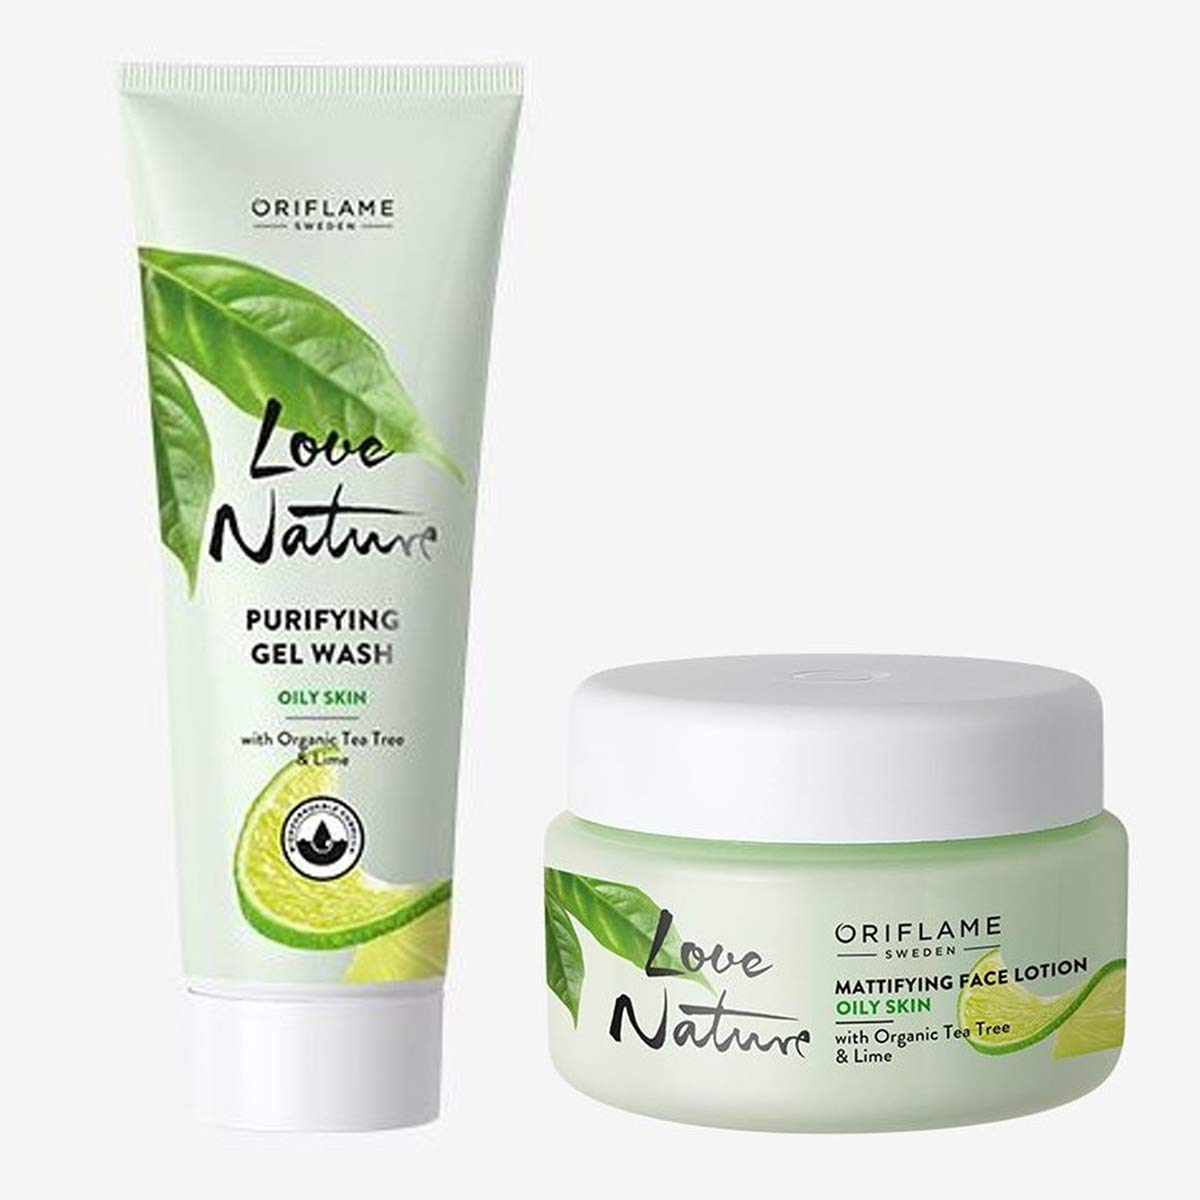 free shipping Oriflame LOVE NATURE Mattifying Face Organic Tre Lotion Tea with shop